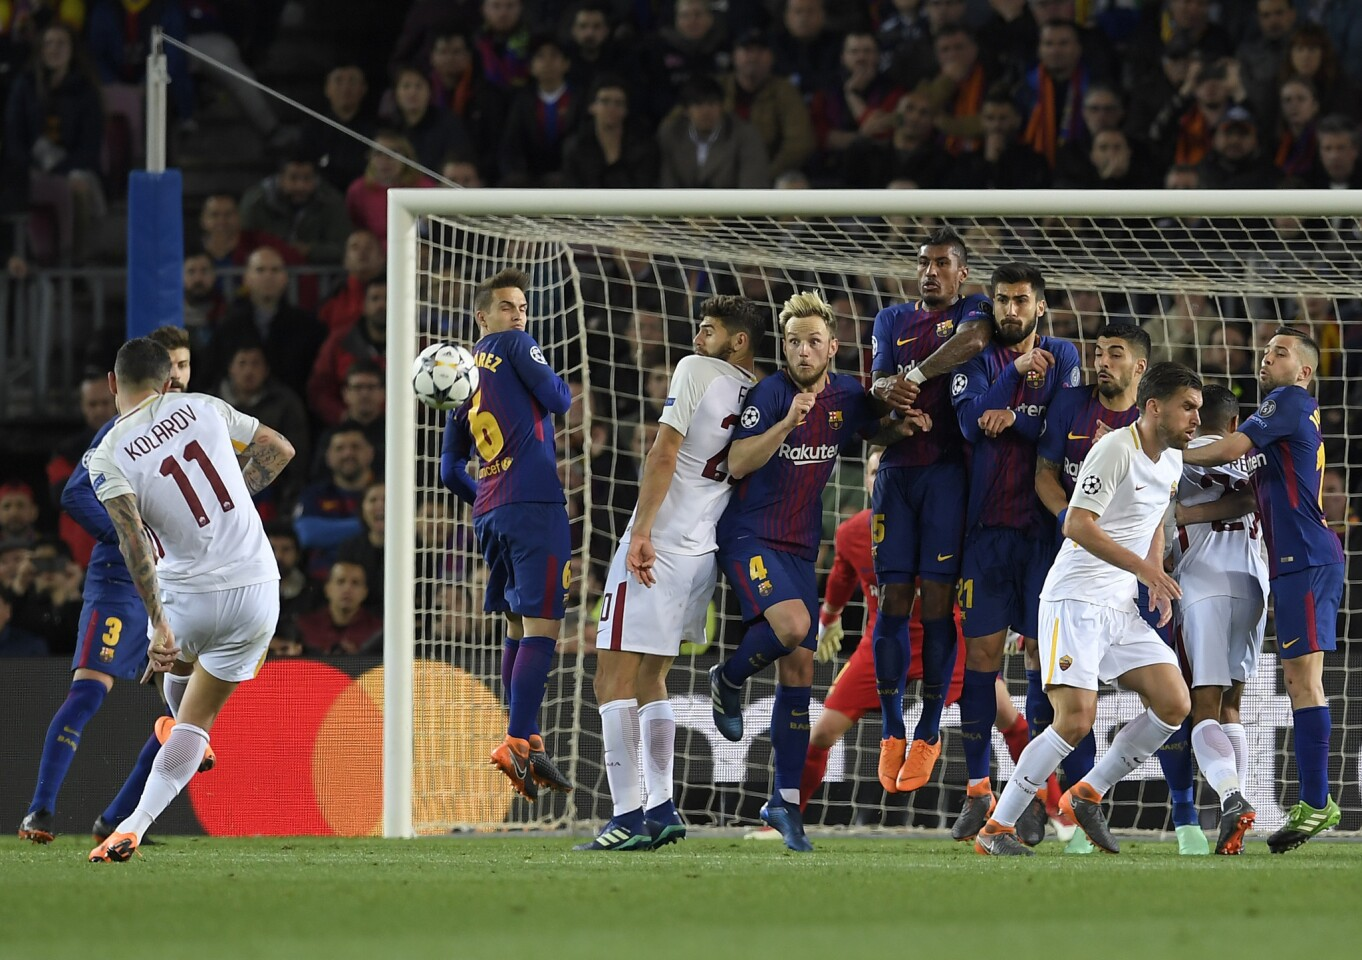 Roma's Serbian defender Aleksandar Kolarov (L) shoots against Barcelona's wall during the UEFA Champions League quarter-final first leg football match between FC Barcelona and AS Roma at the Camp Nou Stadium in Barcelona on April 4, 2018. / AFP PHOTO / LLUIS GENELLUIS GENE/AFP/Getty Images ** OUTS - ELSENT, FPG, CM - OUTS * NM, PH, VA if sourced by CT, LA or MoD **